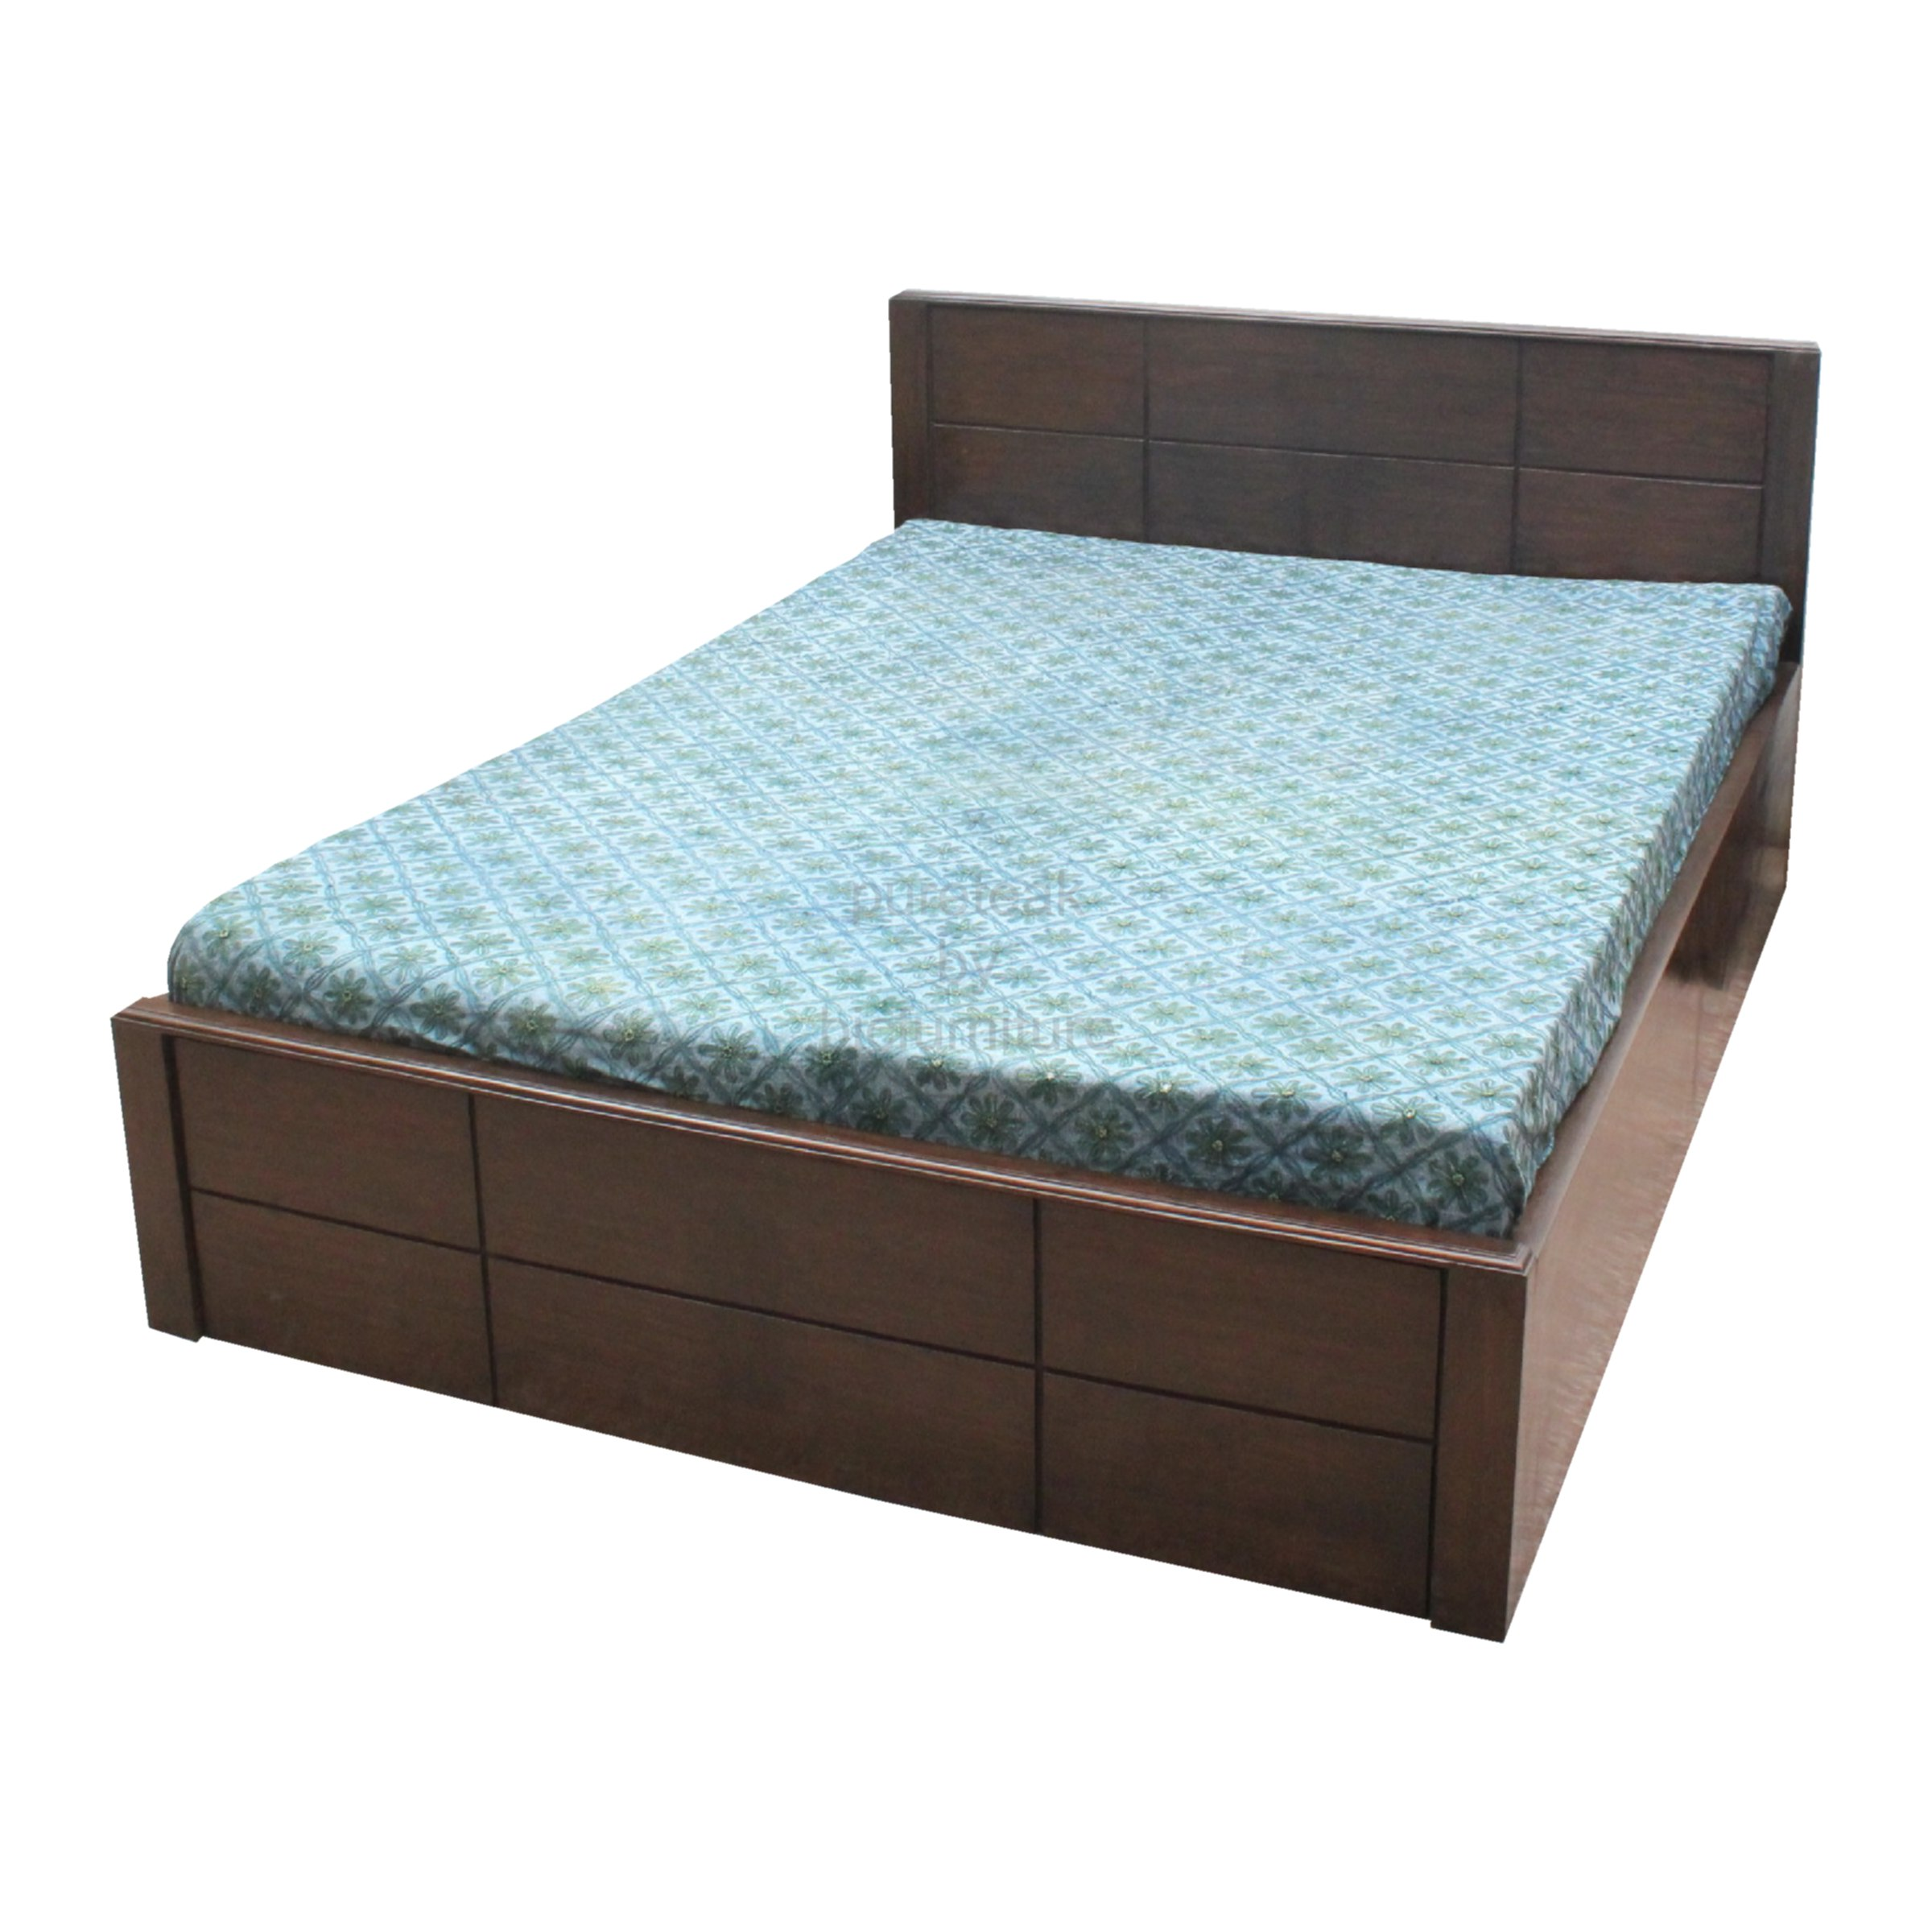 wooden furniture box beds. Dark_finish_wood_double_bed_with_lower_storage. Dark_wood_double_bed_with_lower_storage. Modern_finish_wood_double_bed_with_lower_storage Wooden Furniture Box Beds U